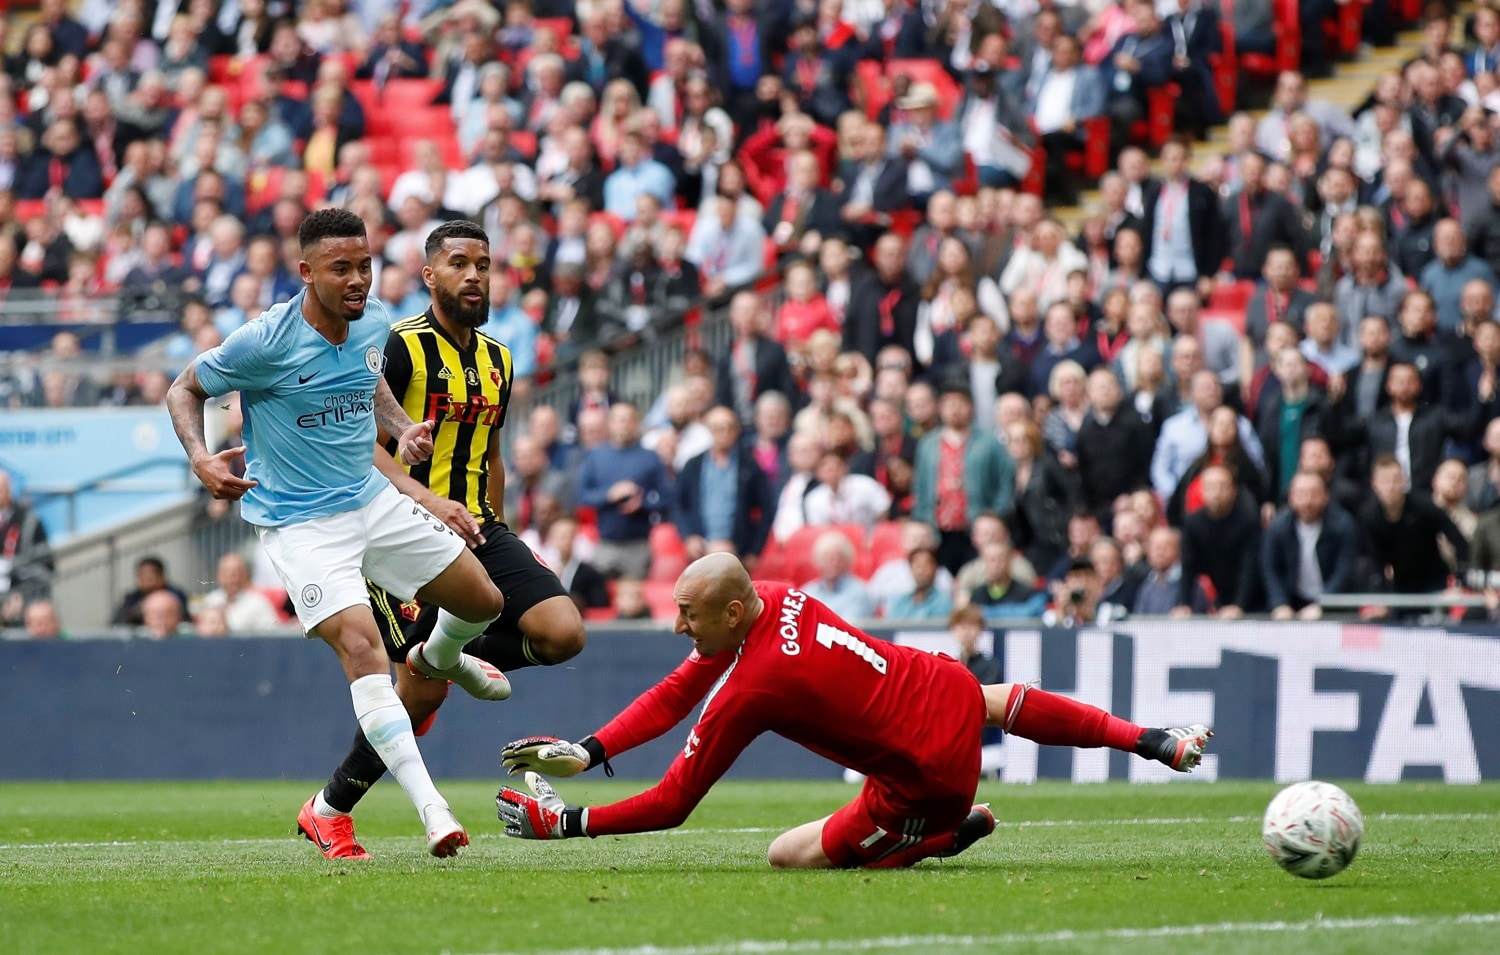 Soccer Football - FA Cup Final - Manchester City v Watford - Wembley Stadium, London, Britain - May 18, 2019 Manchester City's Gabriel Jesus scores their fourth goal REUTERS/David Klein